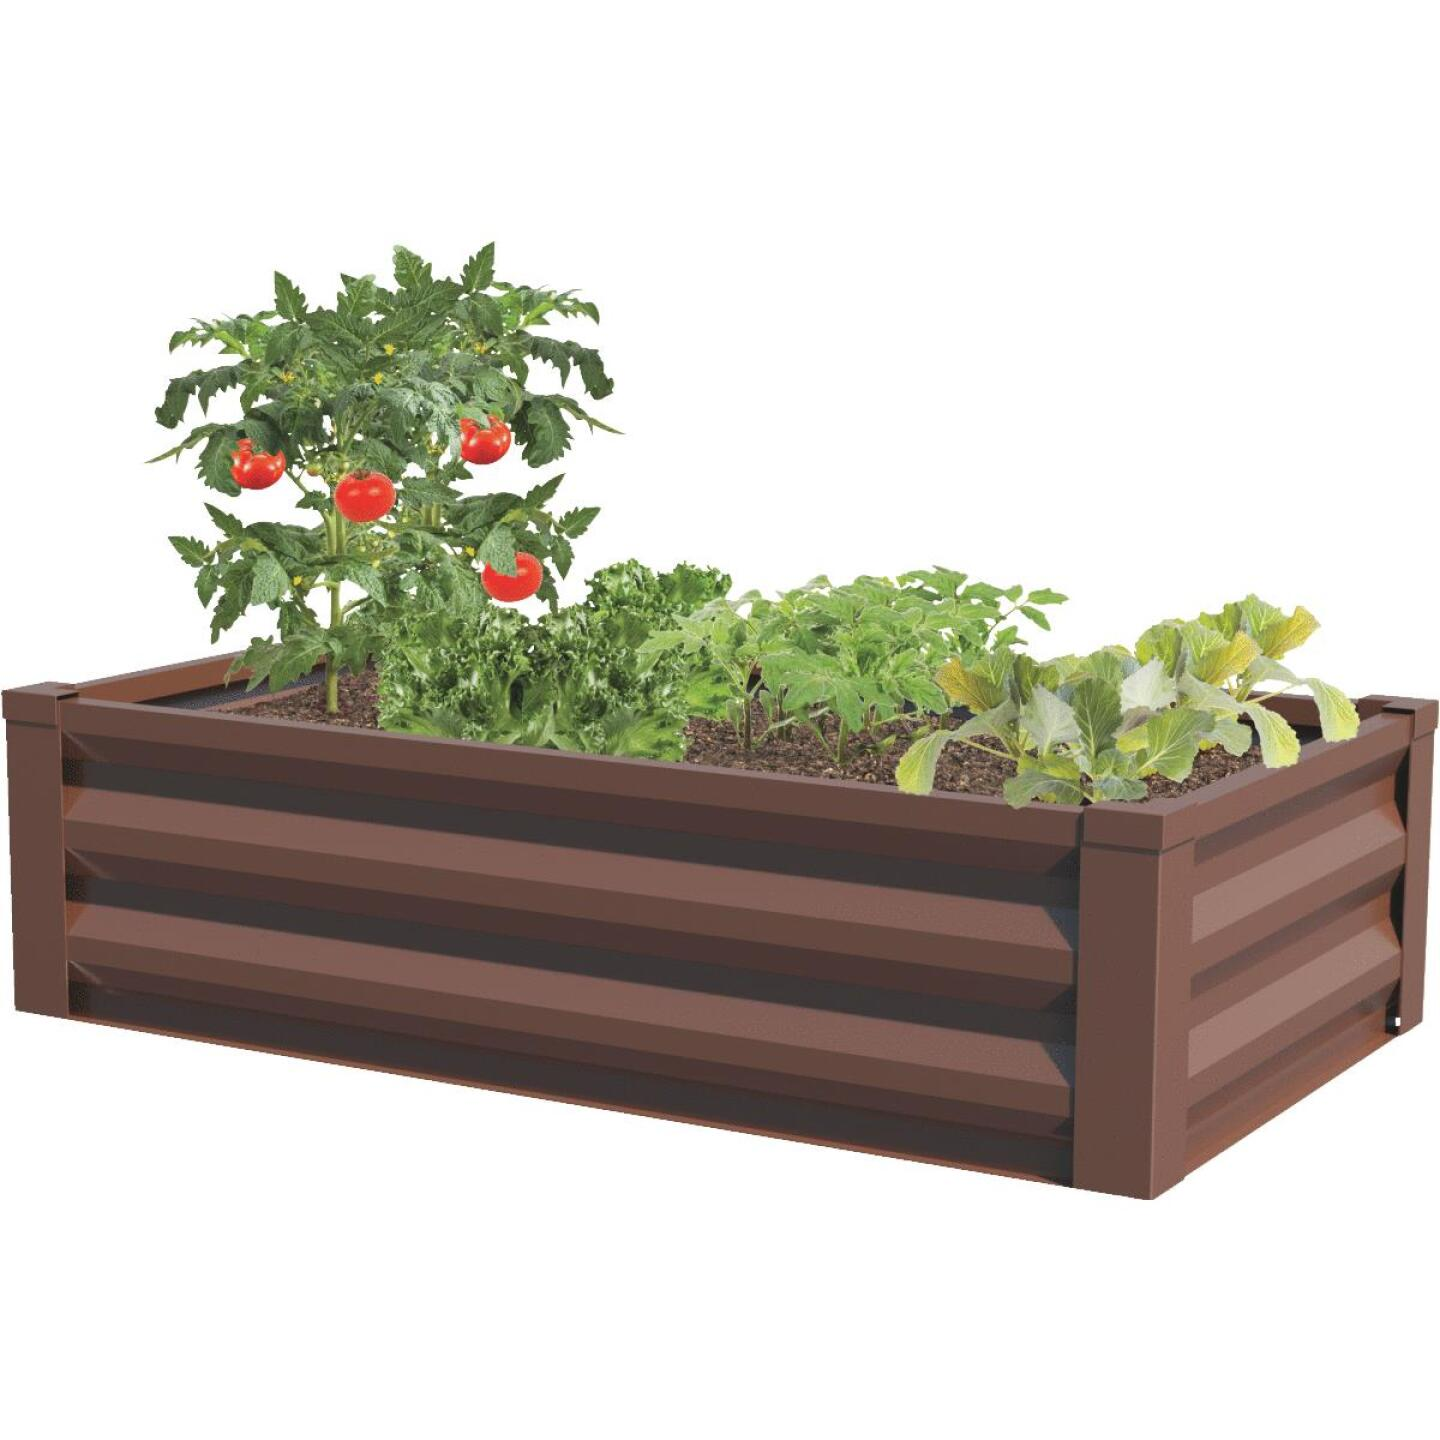 Panacea 24 In. W. x 12 In. H. x 48 In. L. Timber Brown Metal Raised Garden System Image 1